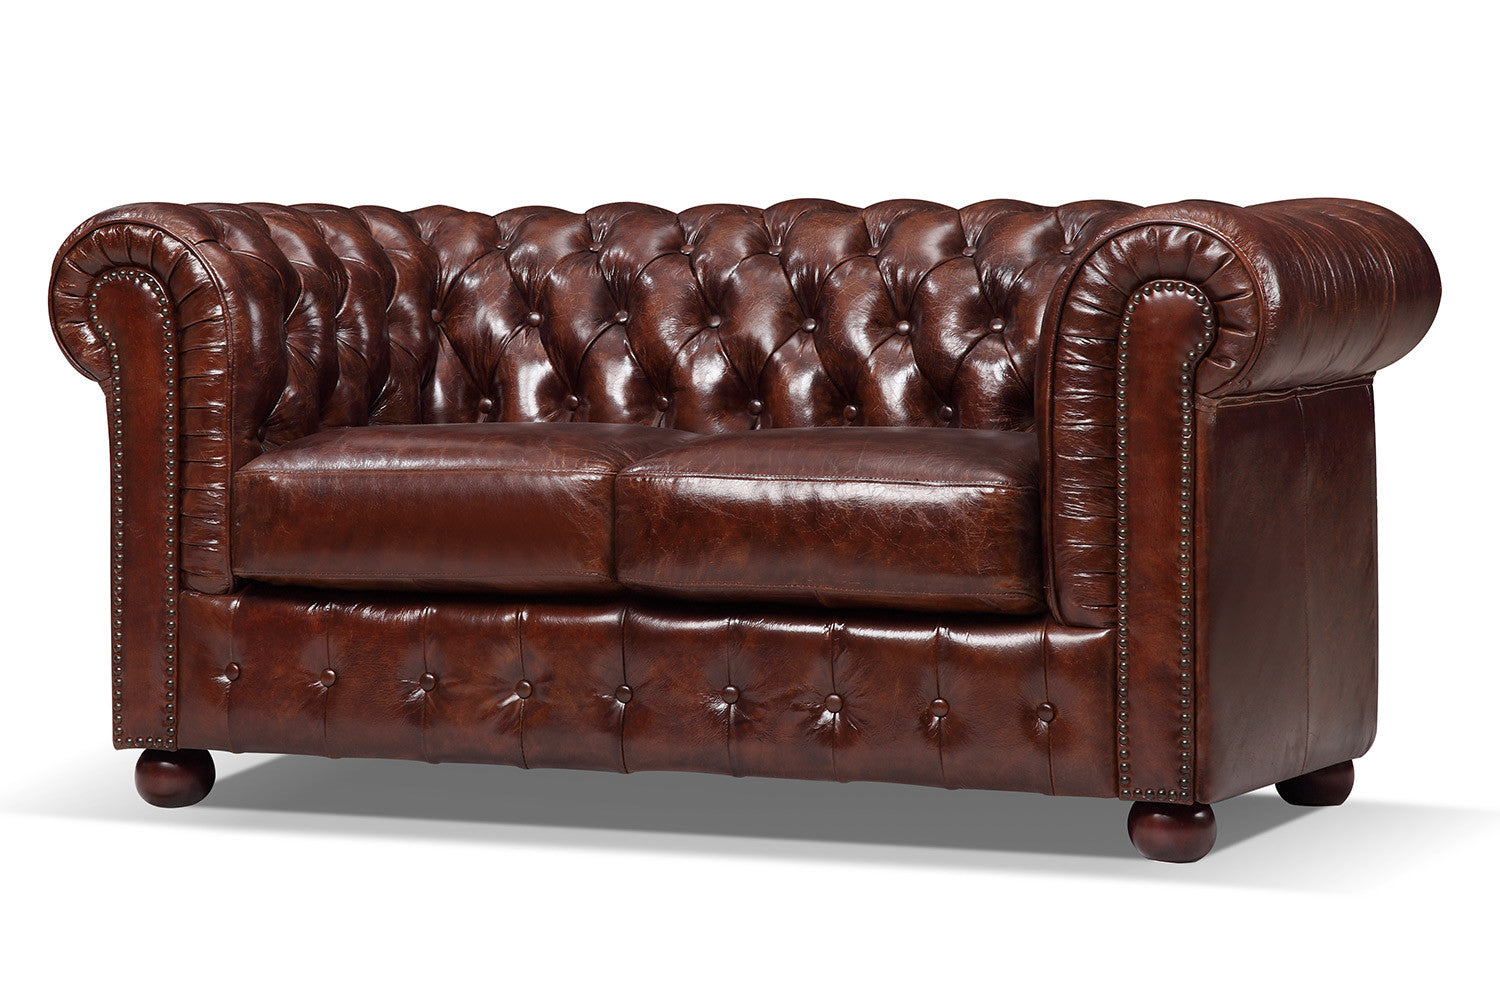 Canap chesterfield original 2 places rose moore for Canape chesterfield cuir 2 places